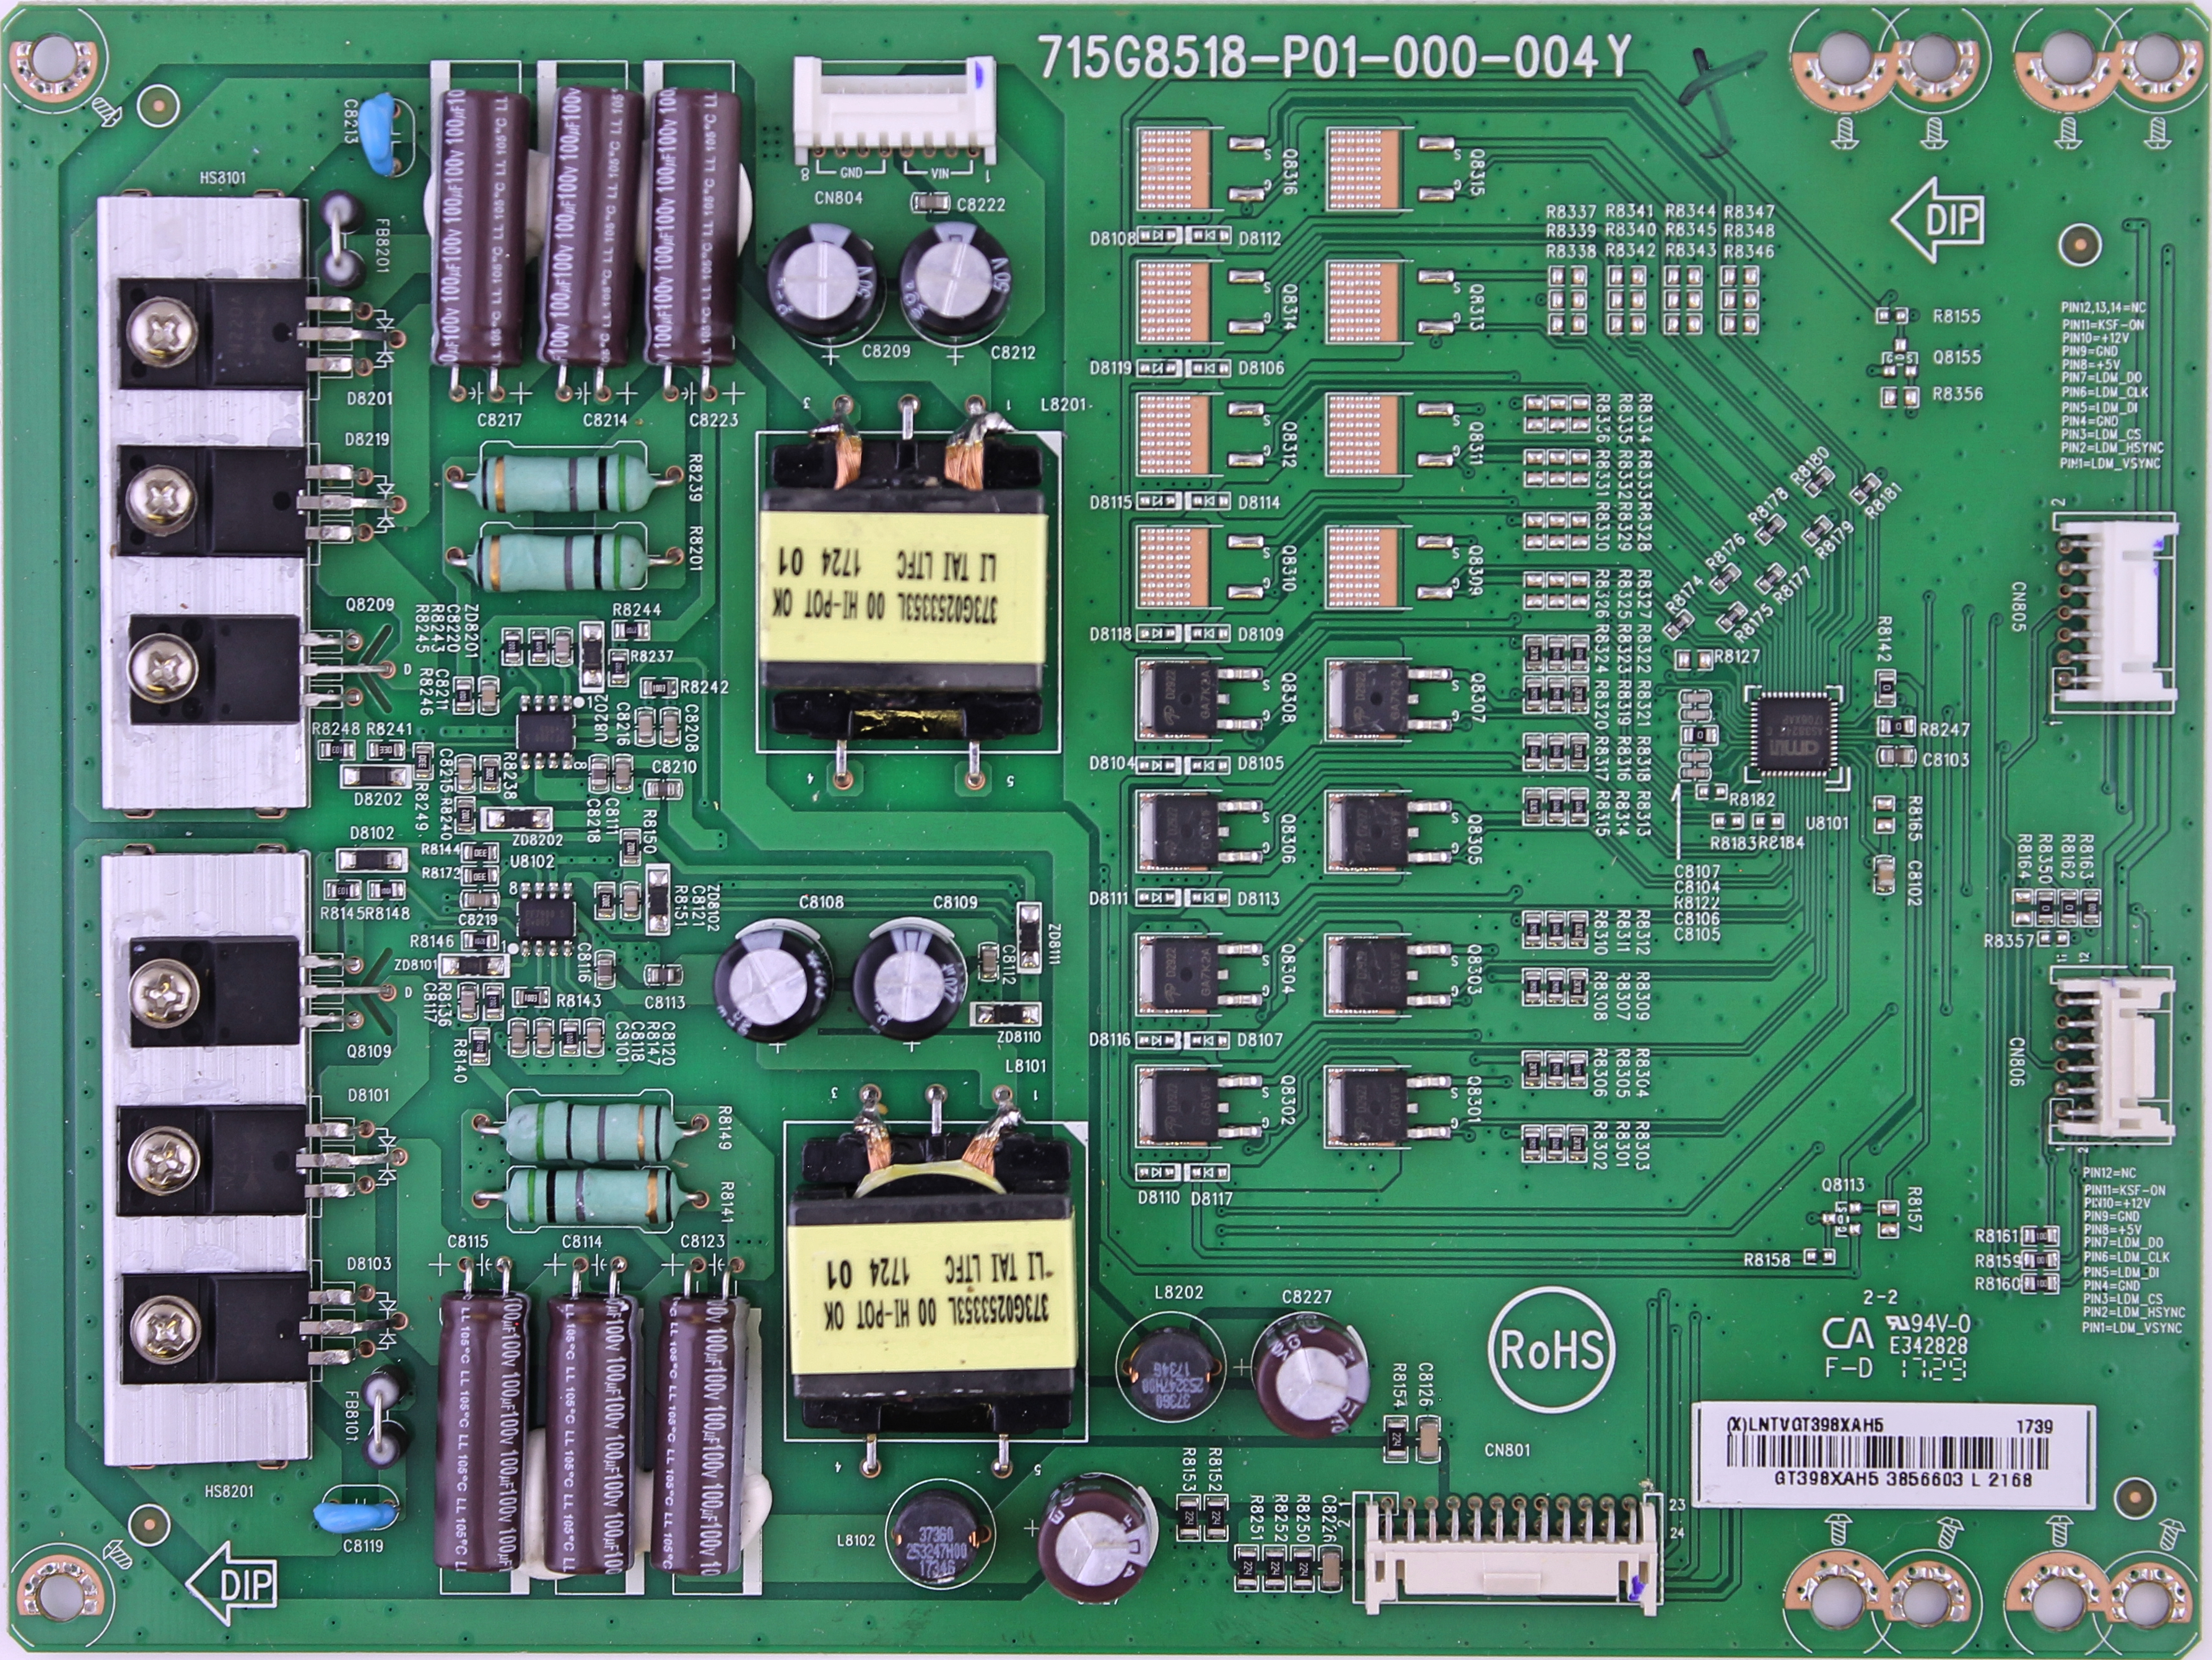 LNTVGT398XAH5 Vizio LED driver board for TV model E75-E1